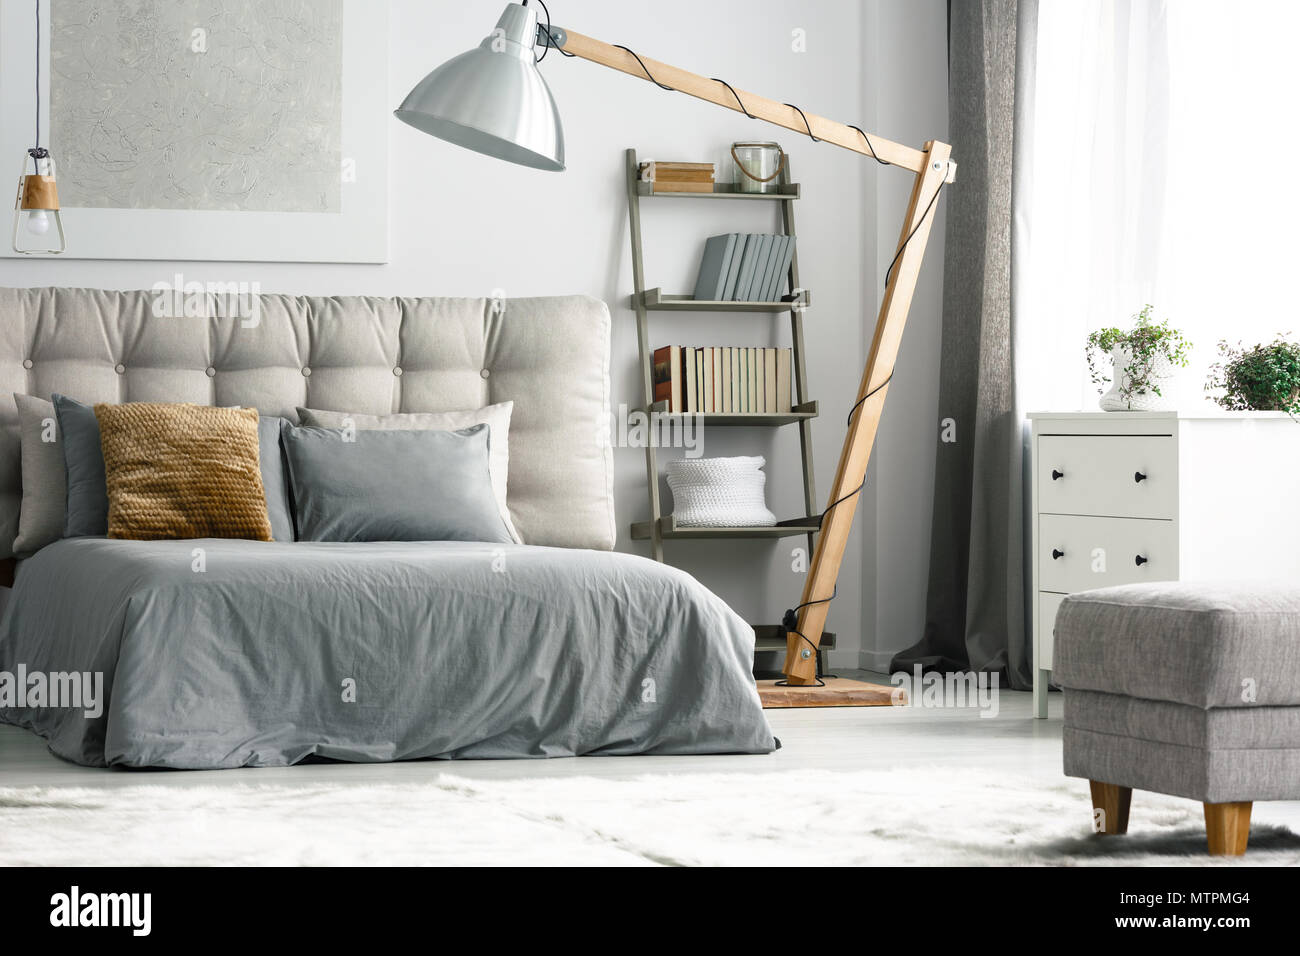 Books Shelf Decor High Resolution Stock Photography And Images Alamy